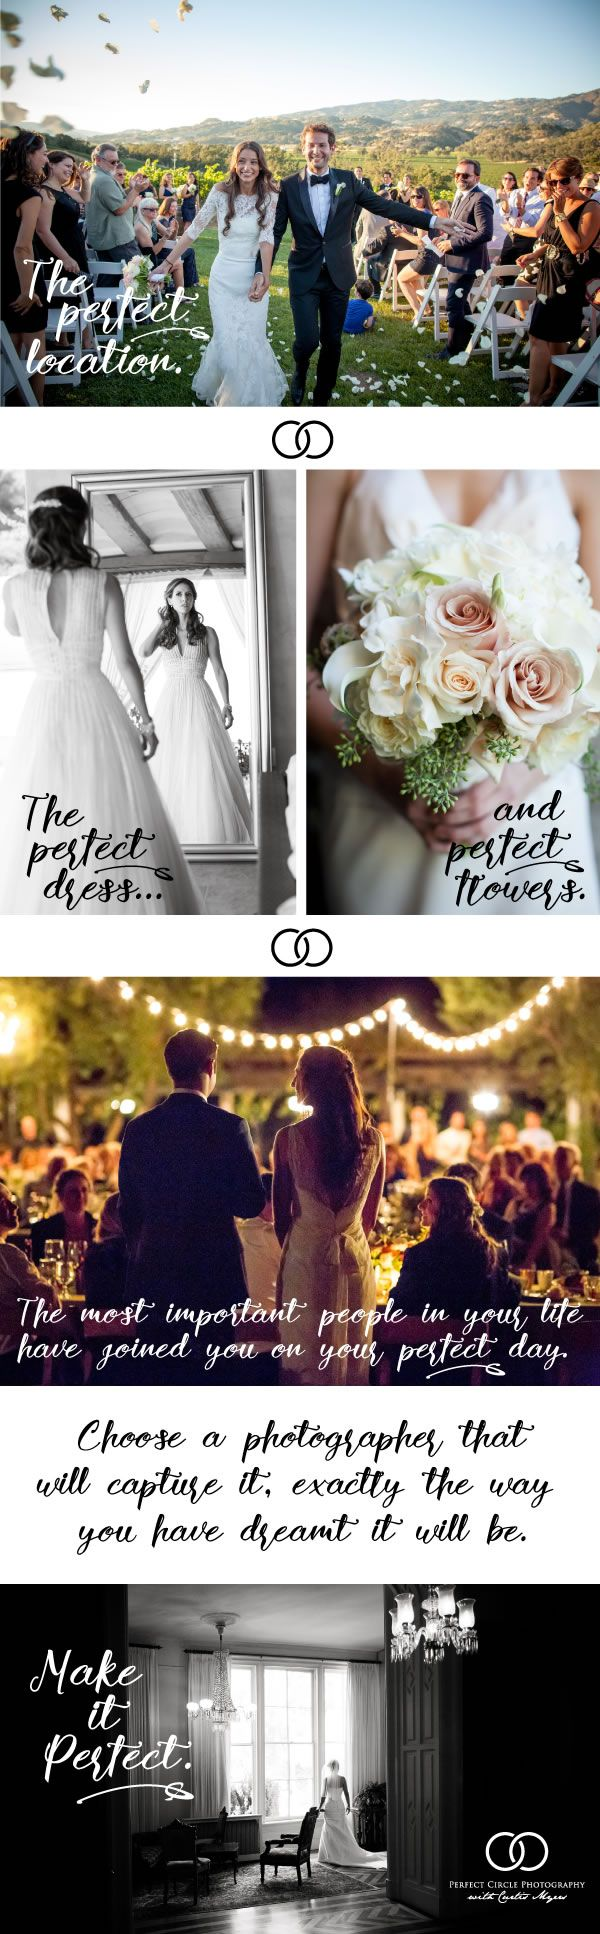 wedding coordinators in orange county ca%0A Choosing the right wedding photographer    Expert advice from Curtis Myers  of Perfect Circle Photography